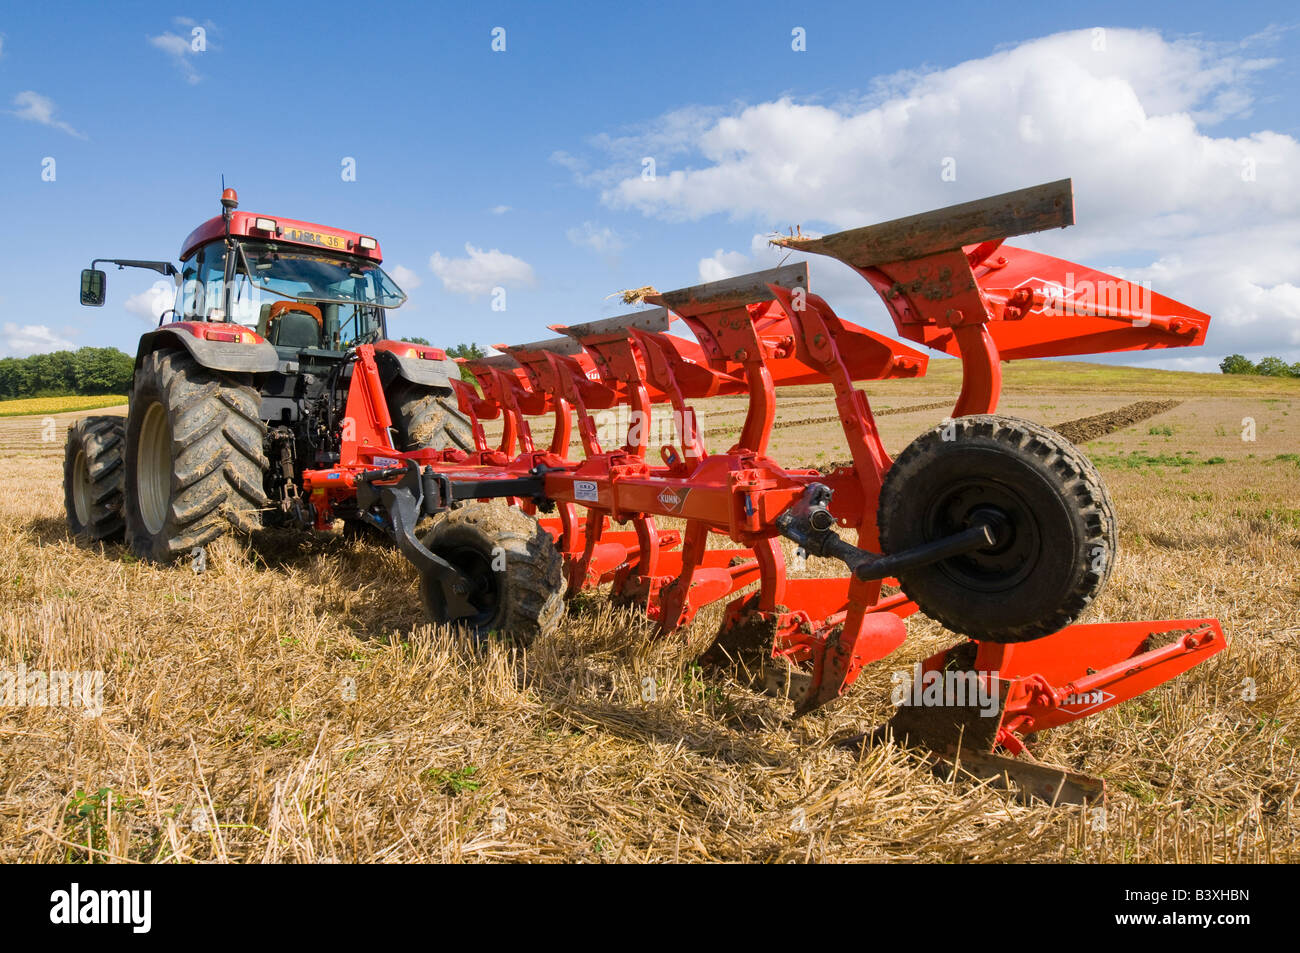 Detail of Kuhn hydraulic double plough blades, Indre-et-Loire, France. - Stock Image